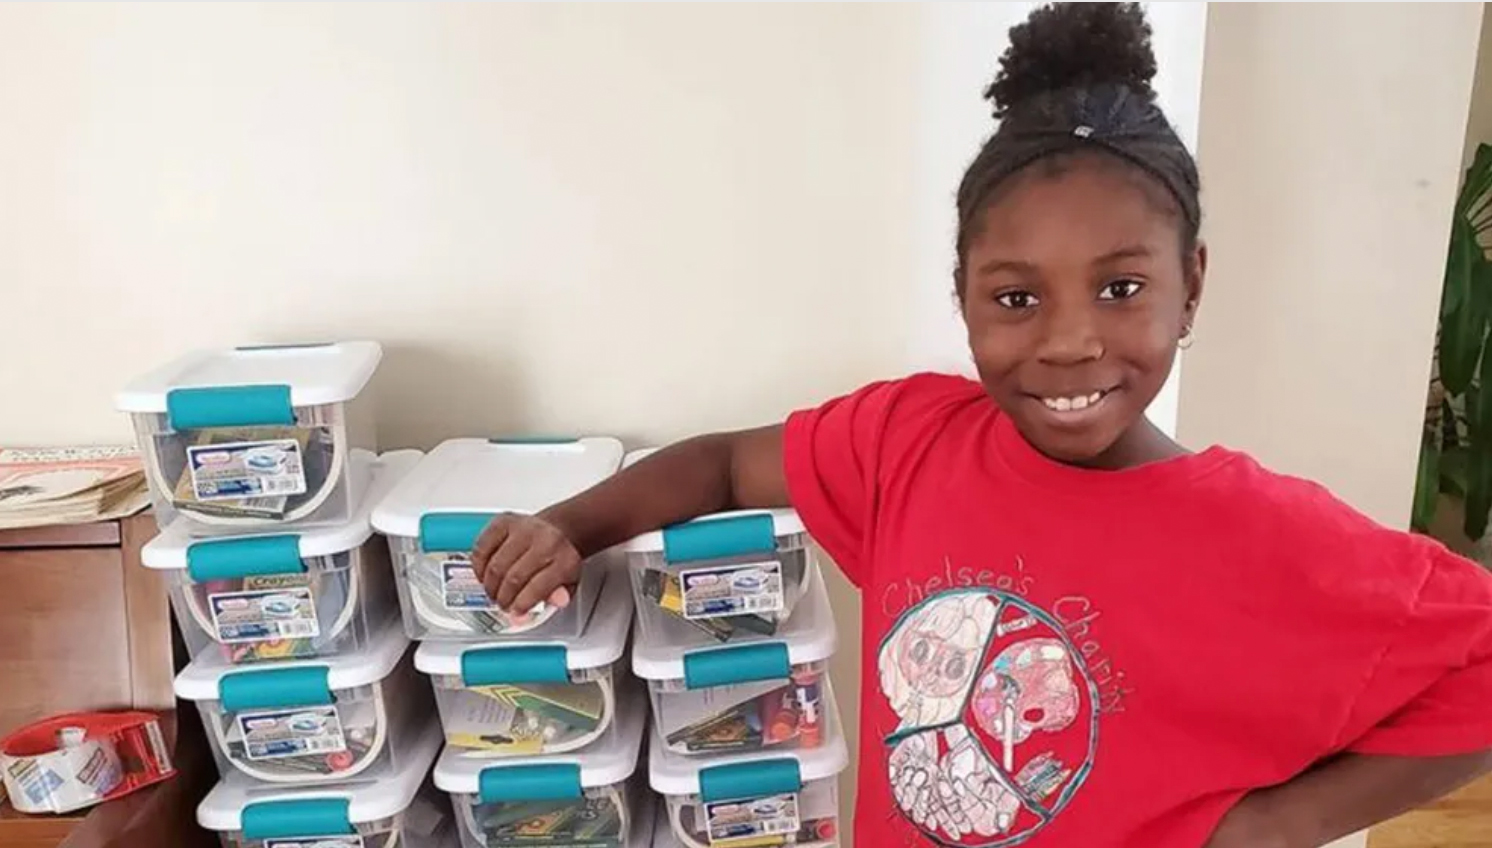 Chelsea Phaire, a 10-year-old from Danbury, Conn. donates art kits to kids in need